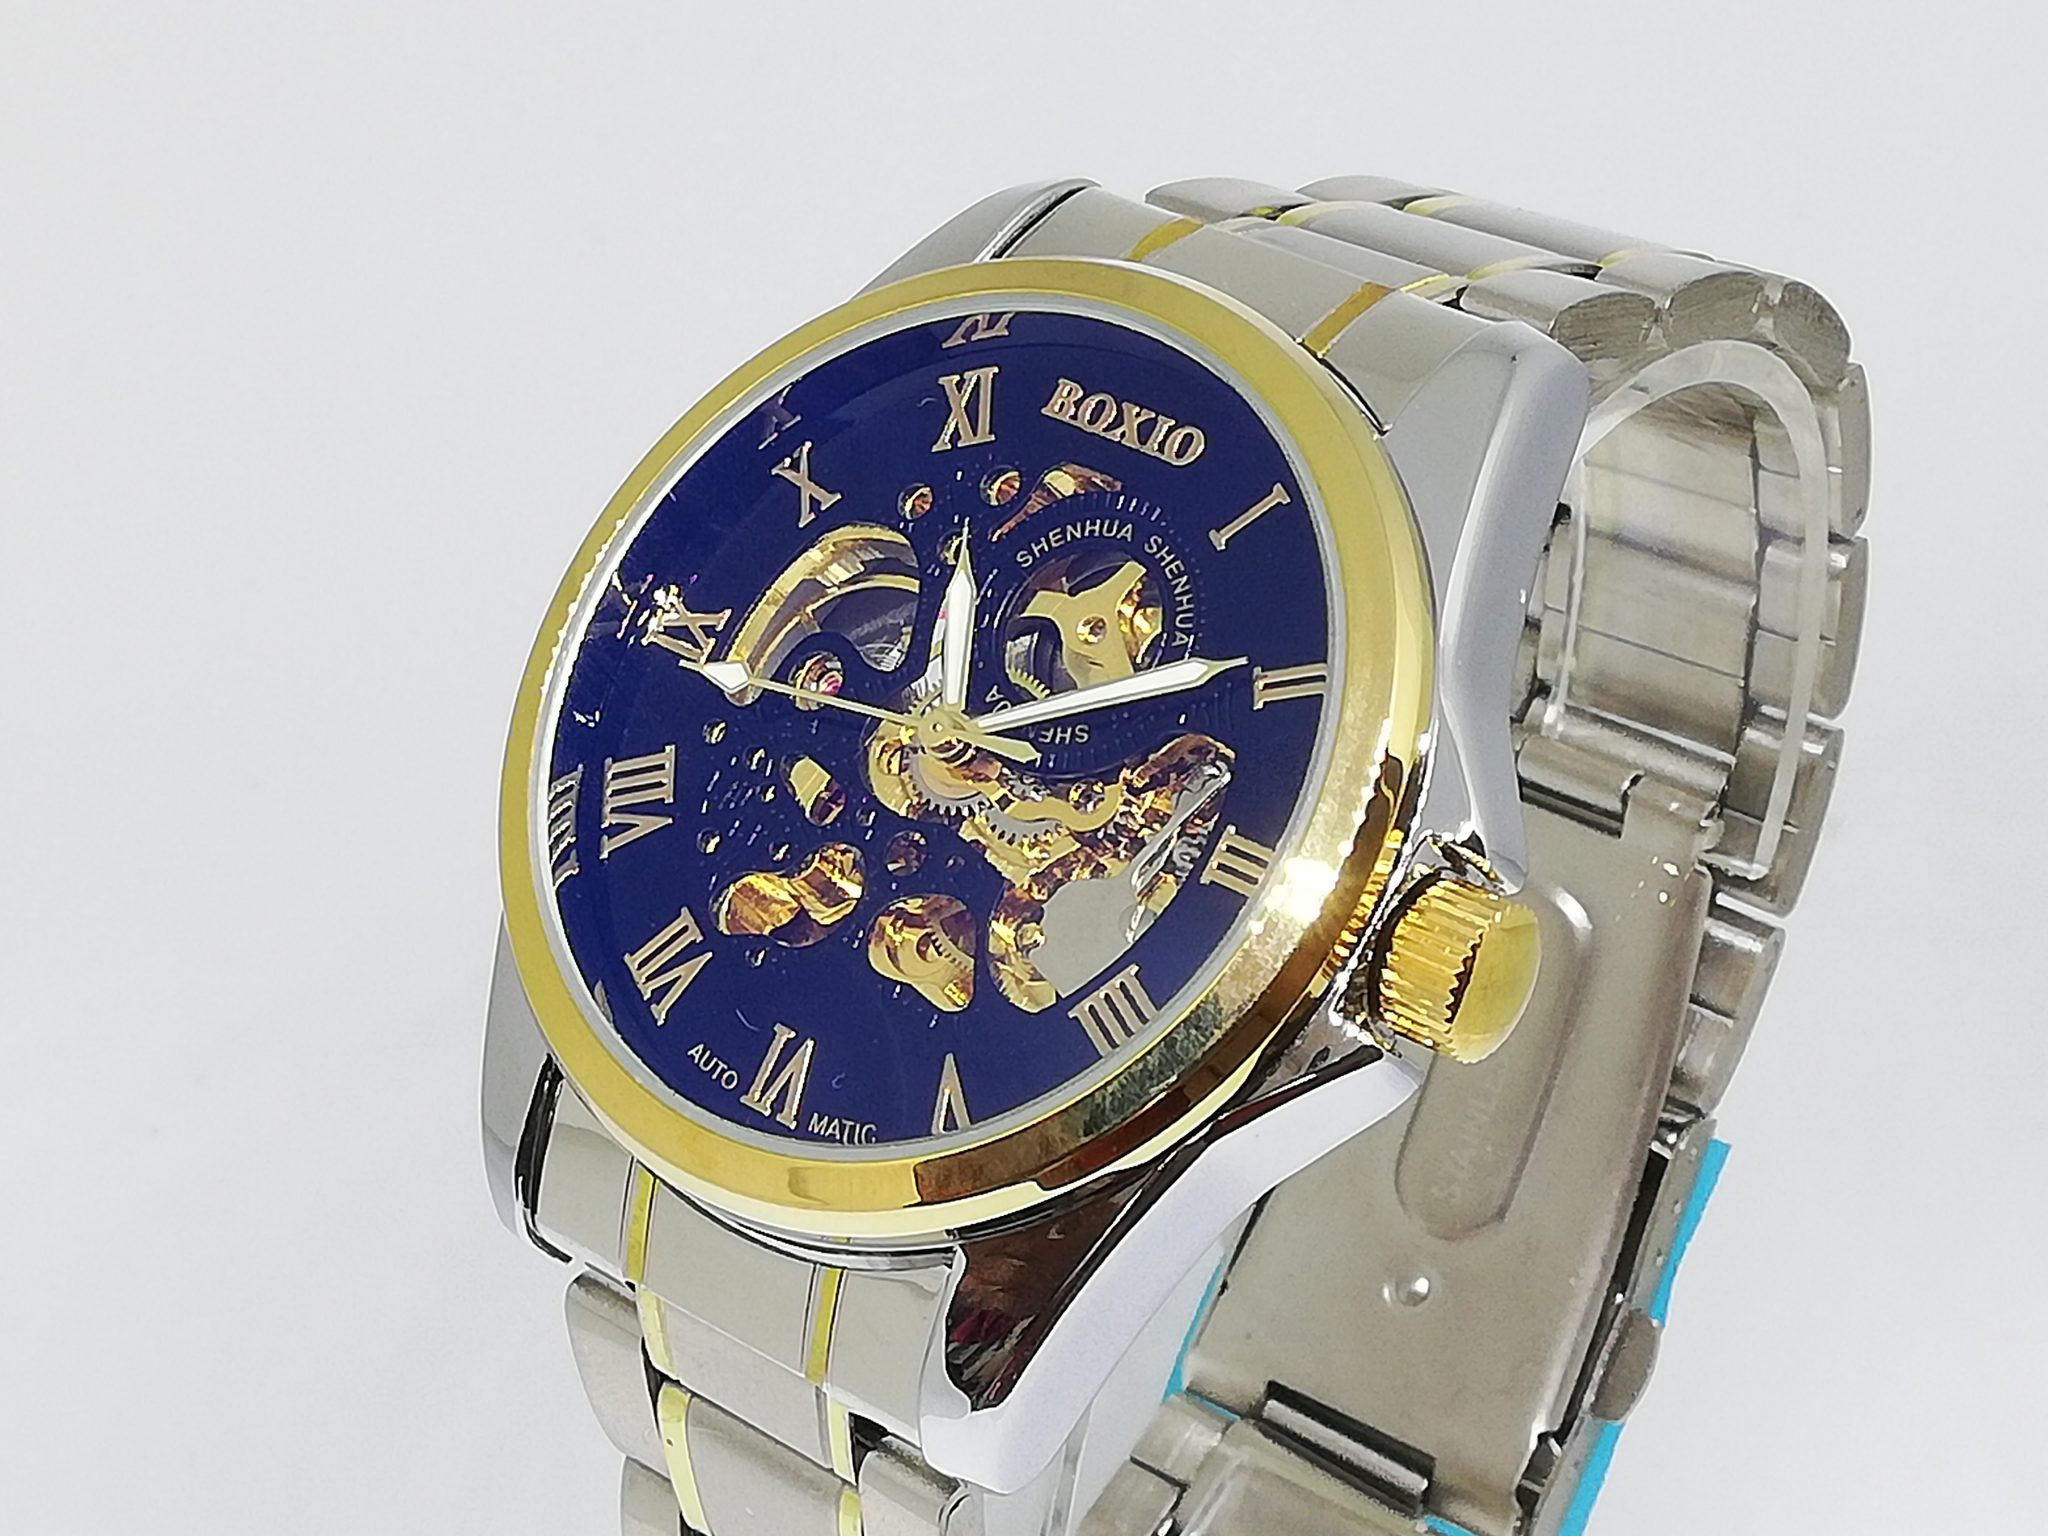 CEAS AUTOMATIC VICTORY 88 STANGA